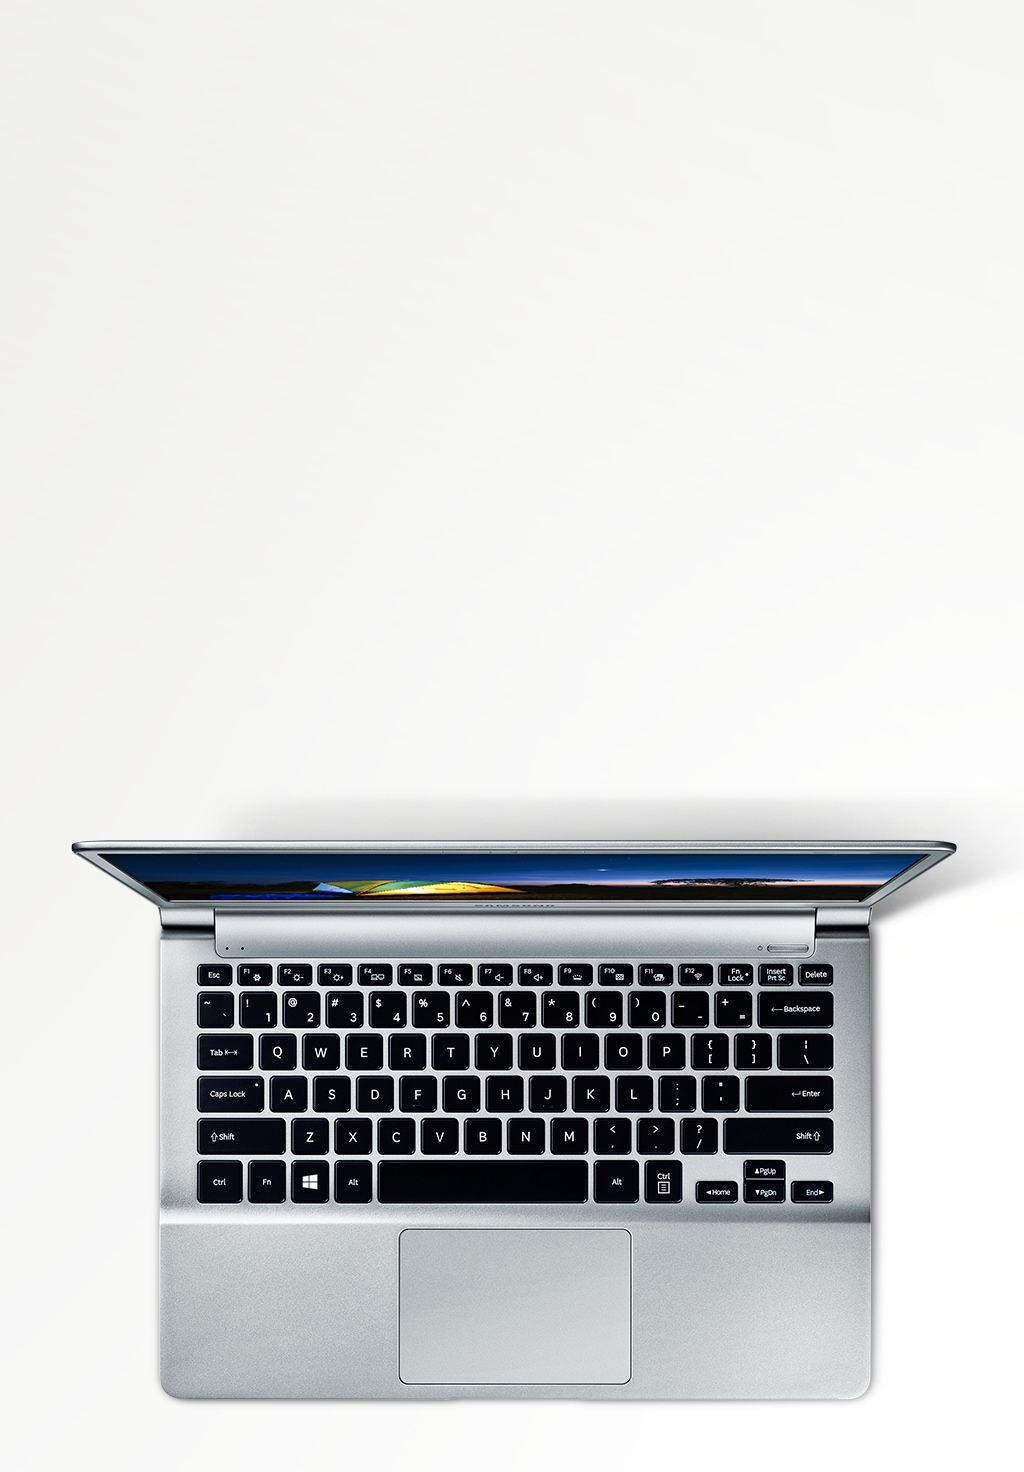 An image showing an aerial view of the Samsung Notebook 9 and an icon indicating it can be used for up to 10 hours.